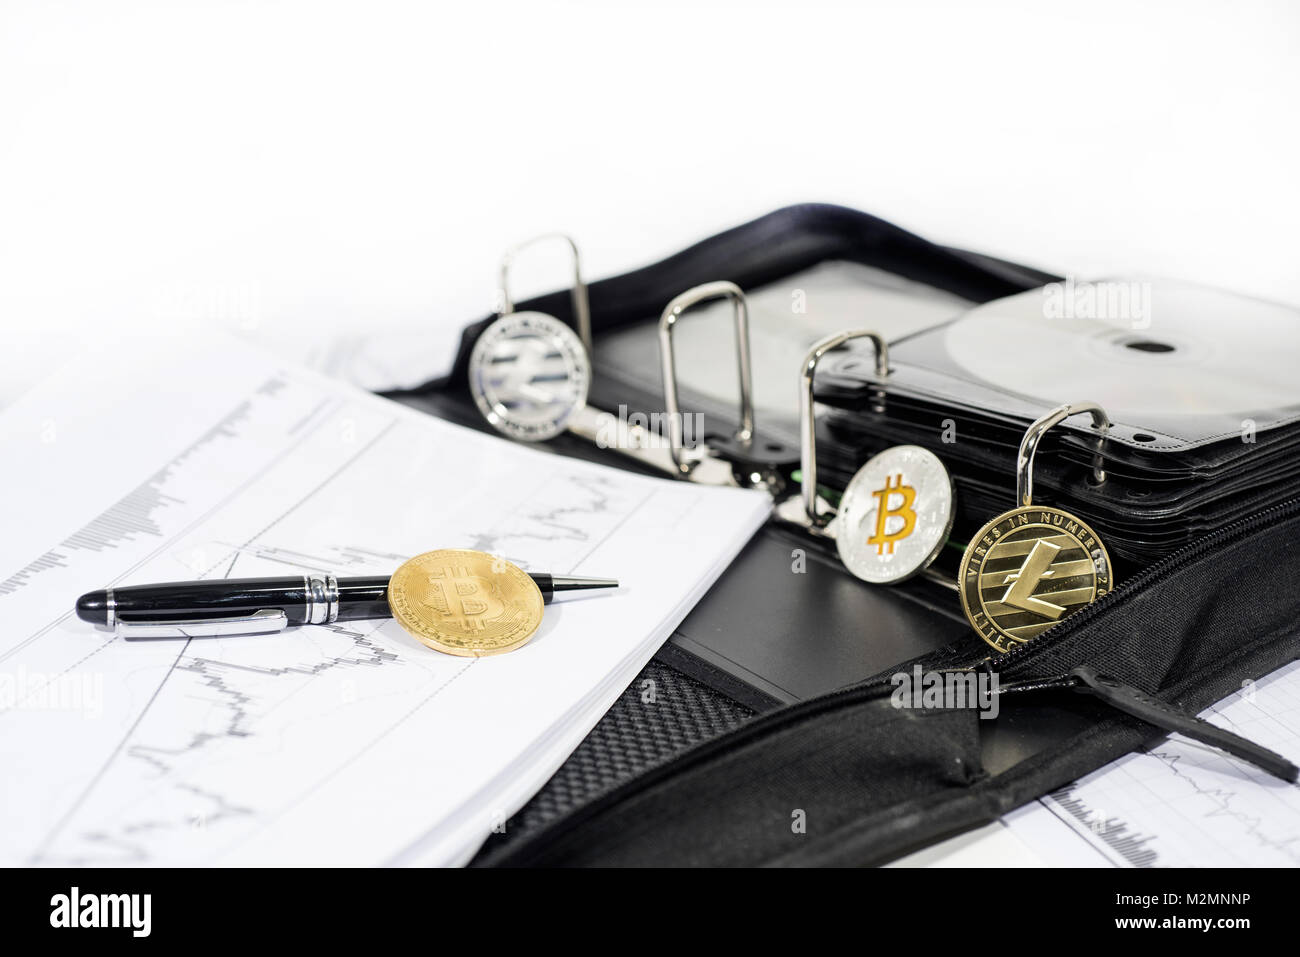 Abstract cryptocurrency photo. Some crypto coins on documents. Stock Photo